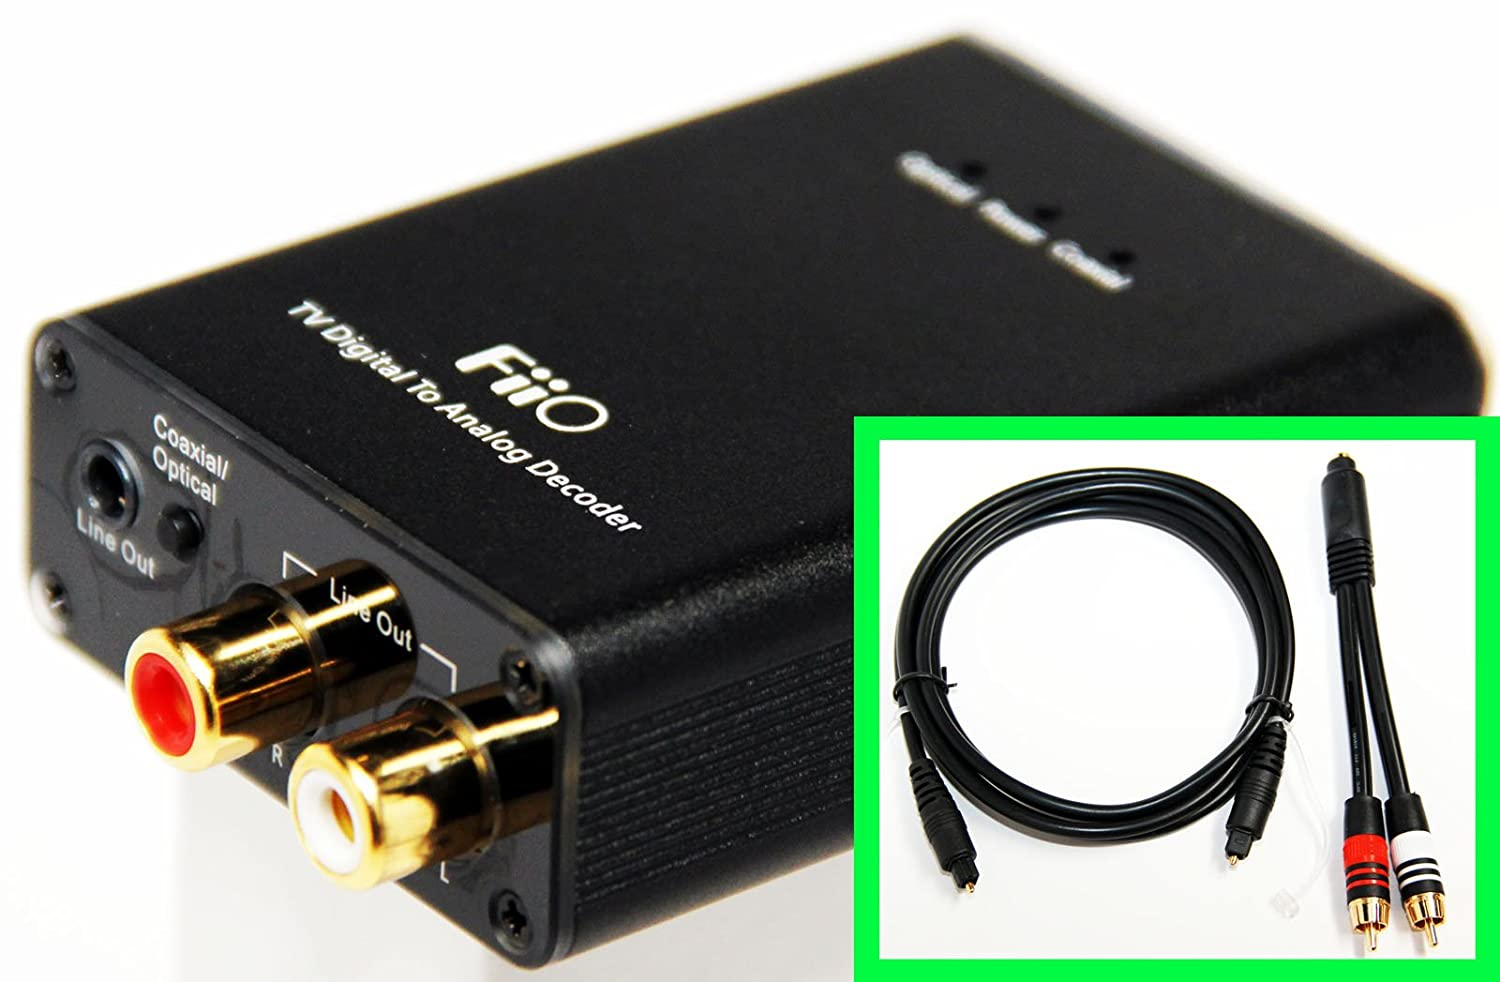 Fiio D3 D03 K Digital To Analog Audio Coverter With Extreme Coaxial Rca Cable Optical Toslink And 192khz 24bit